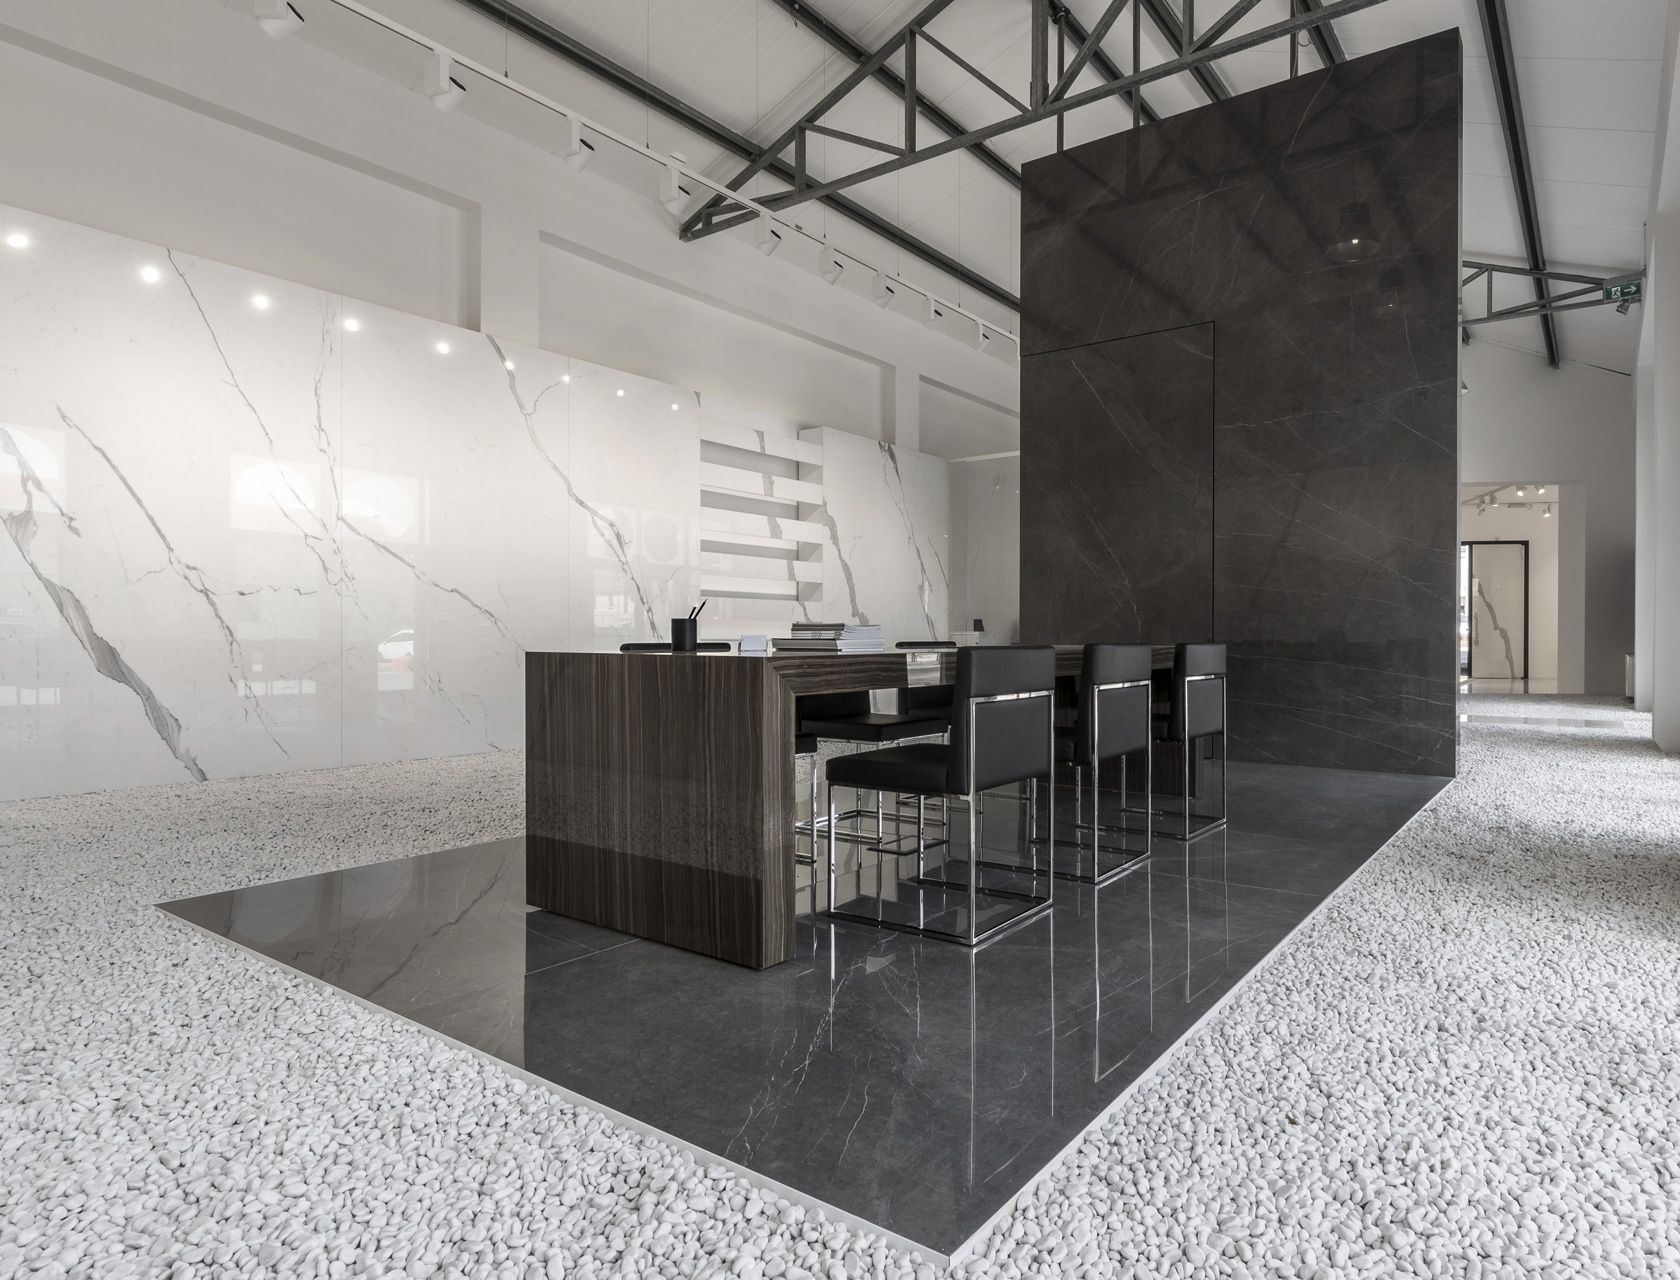 Large slabs ULTRA Porcelain stoneware for floor and wall tiles in 300x150 and 300x100 formats